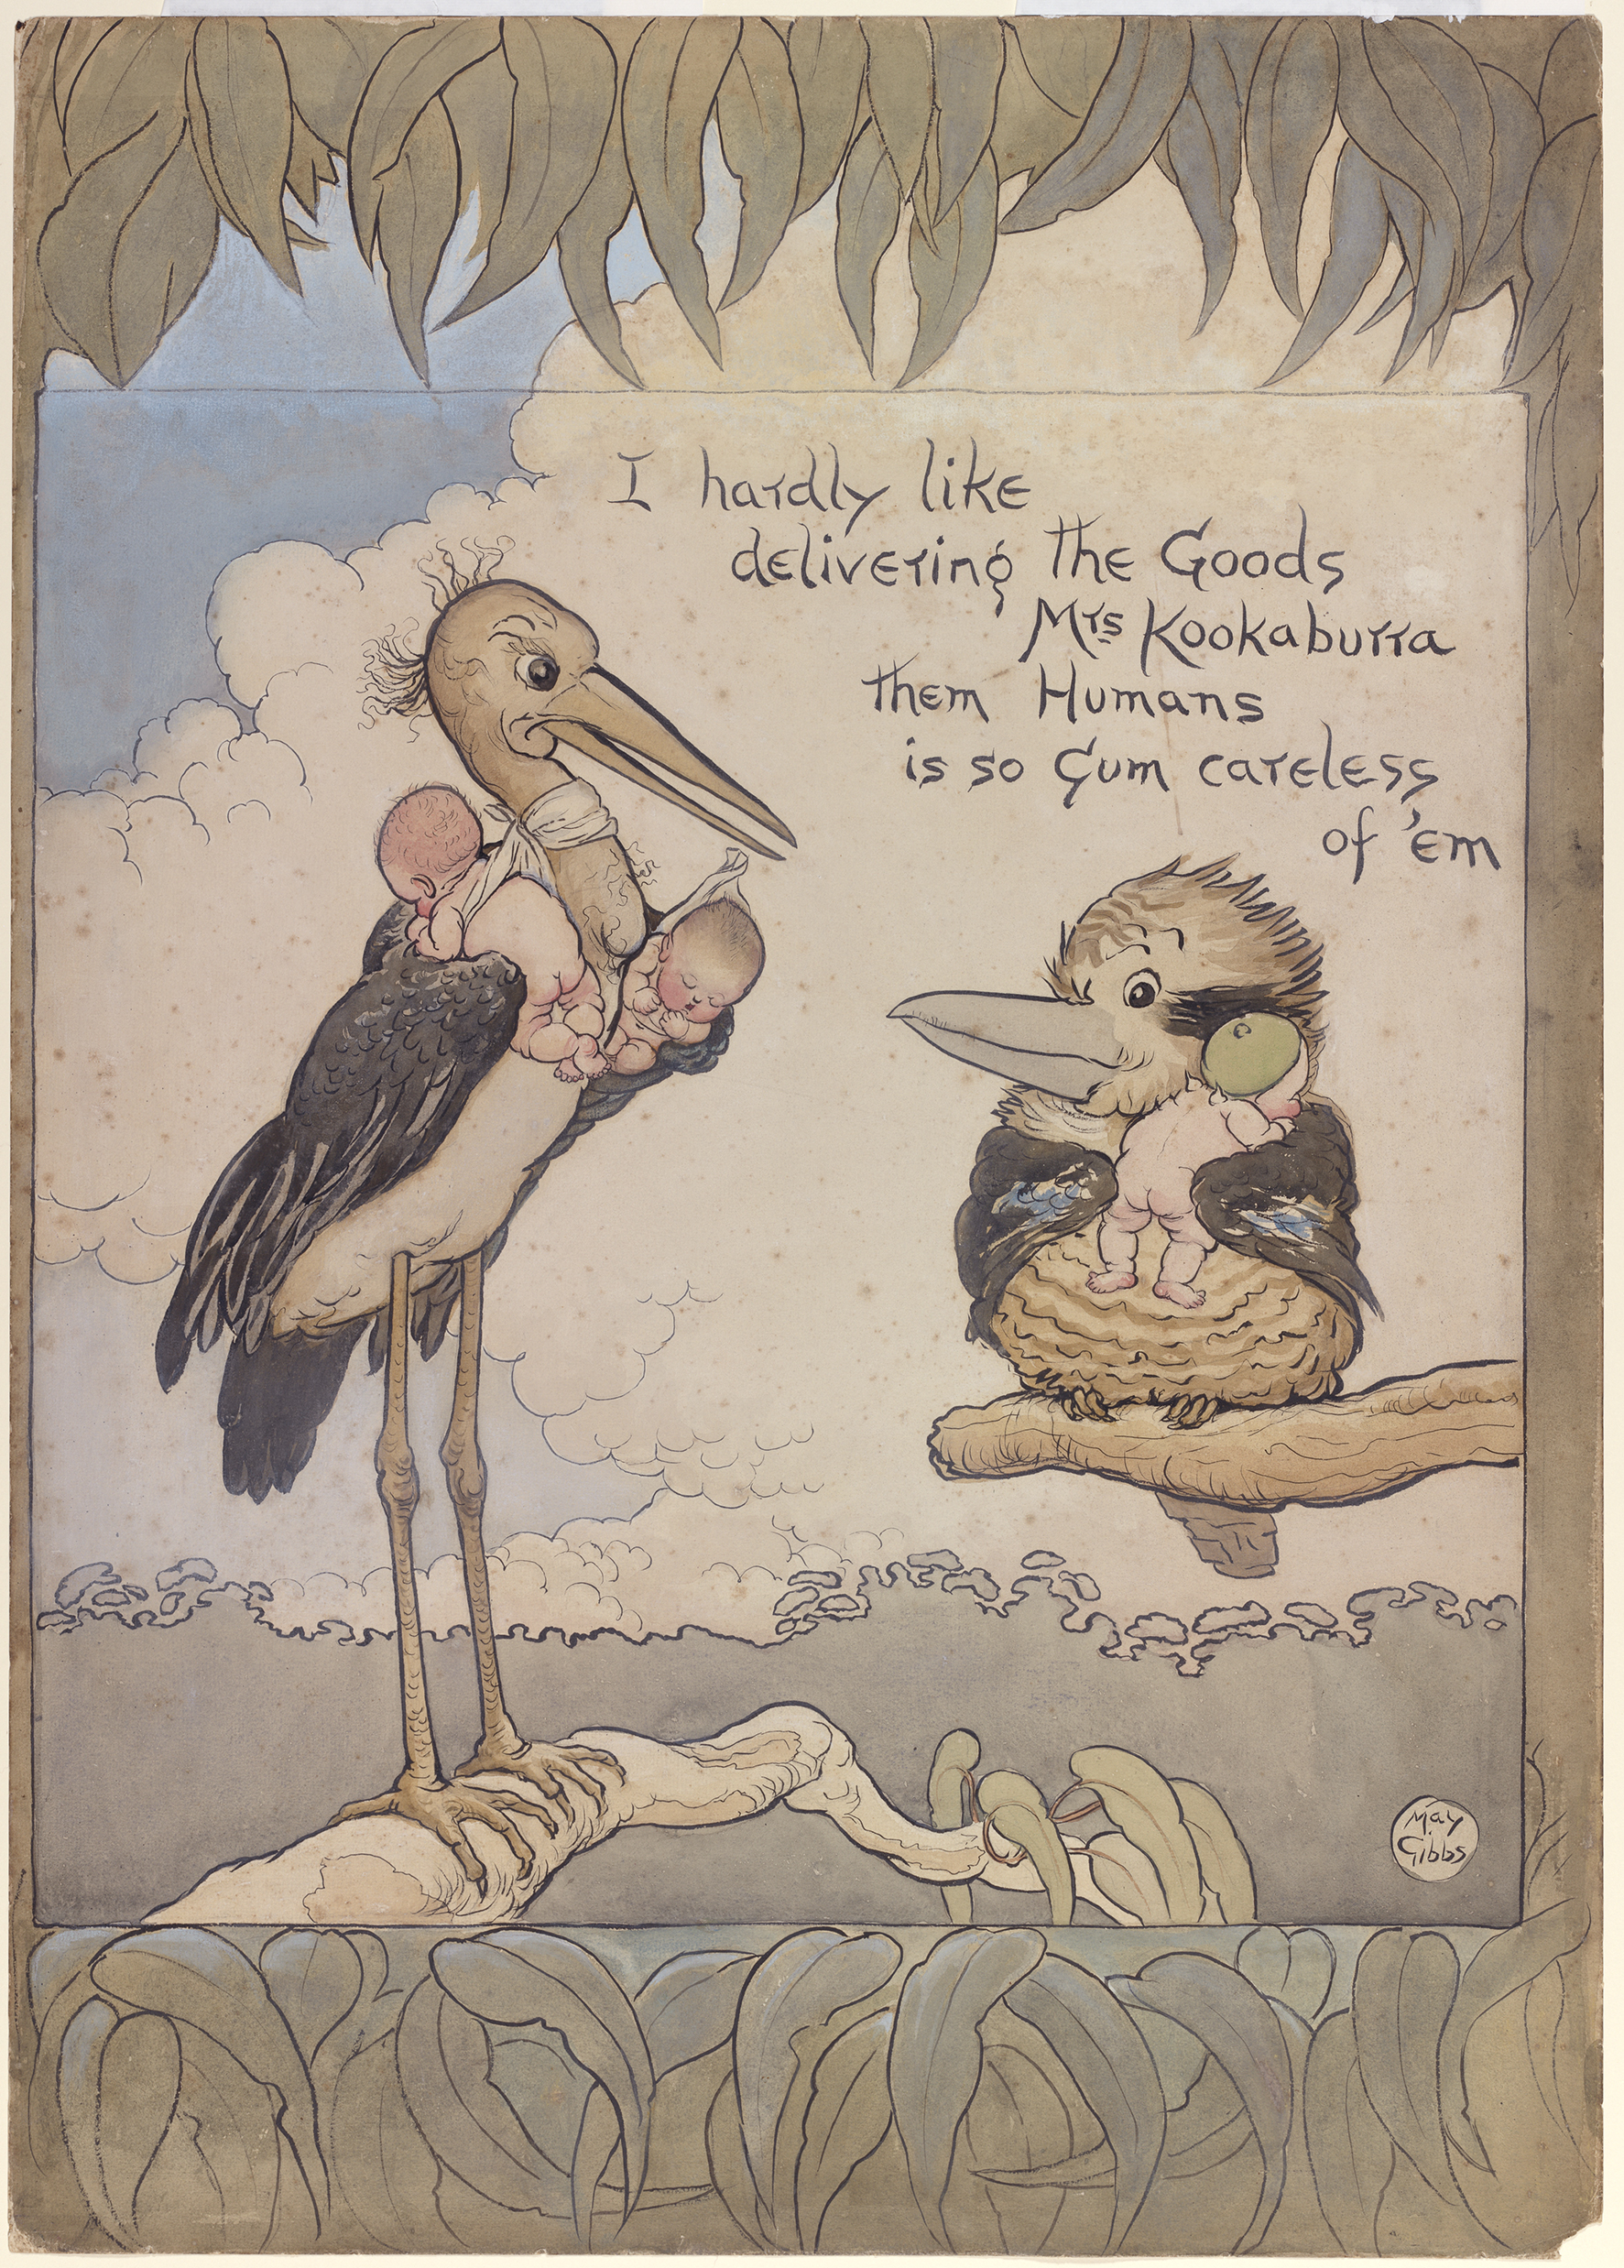 A hand drawn illustration of a stork, holding two babies, having delivered another baby to a Kookaburra